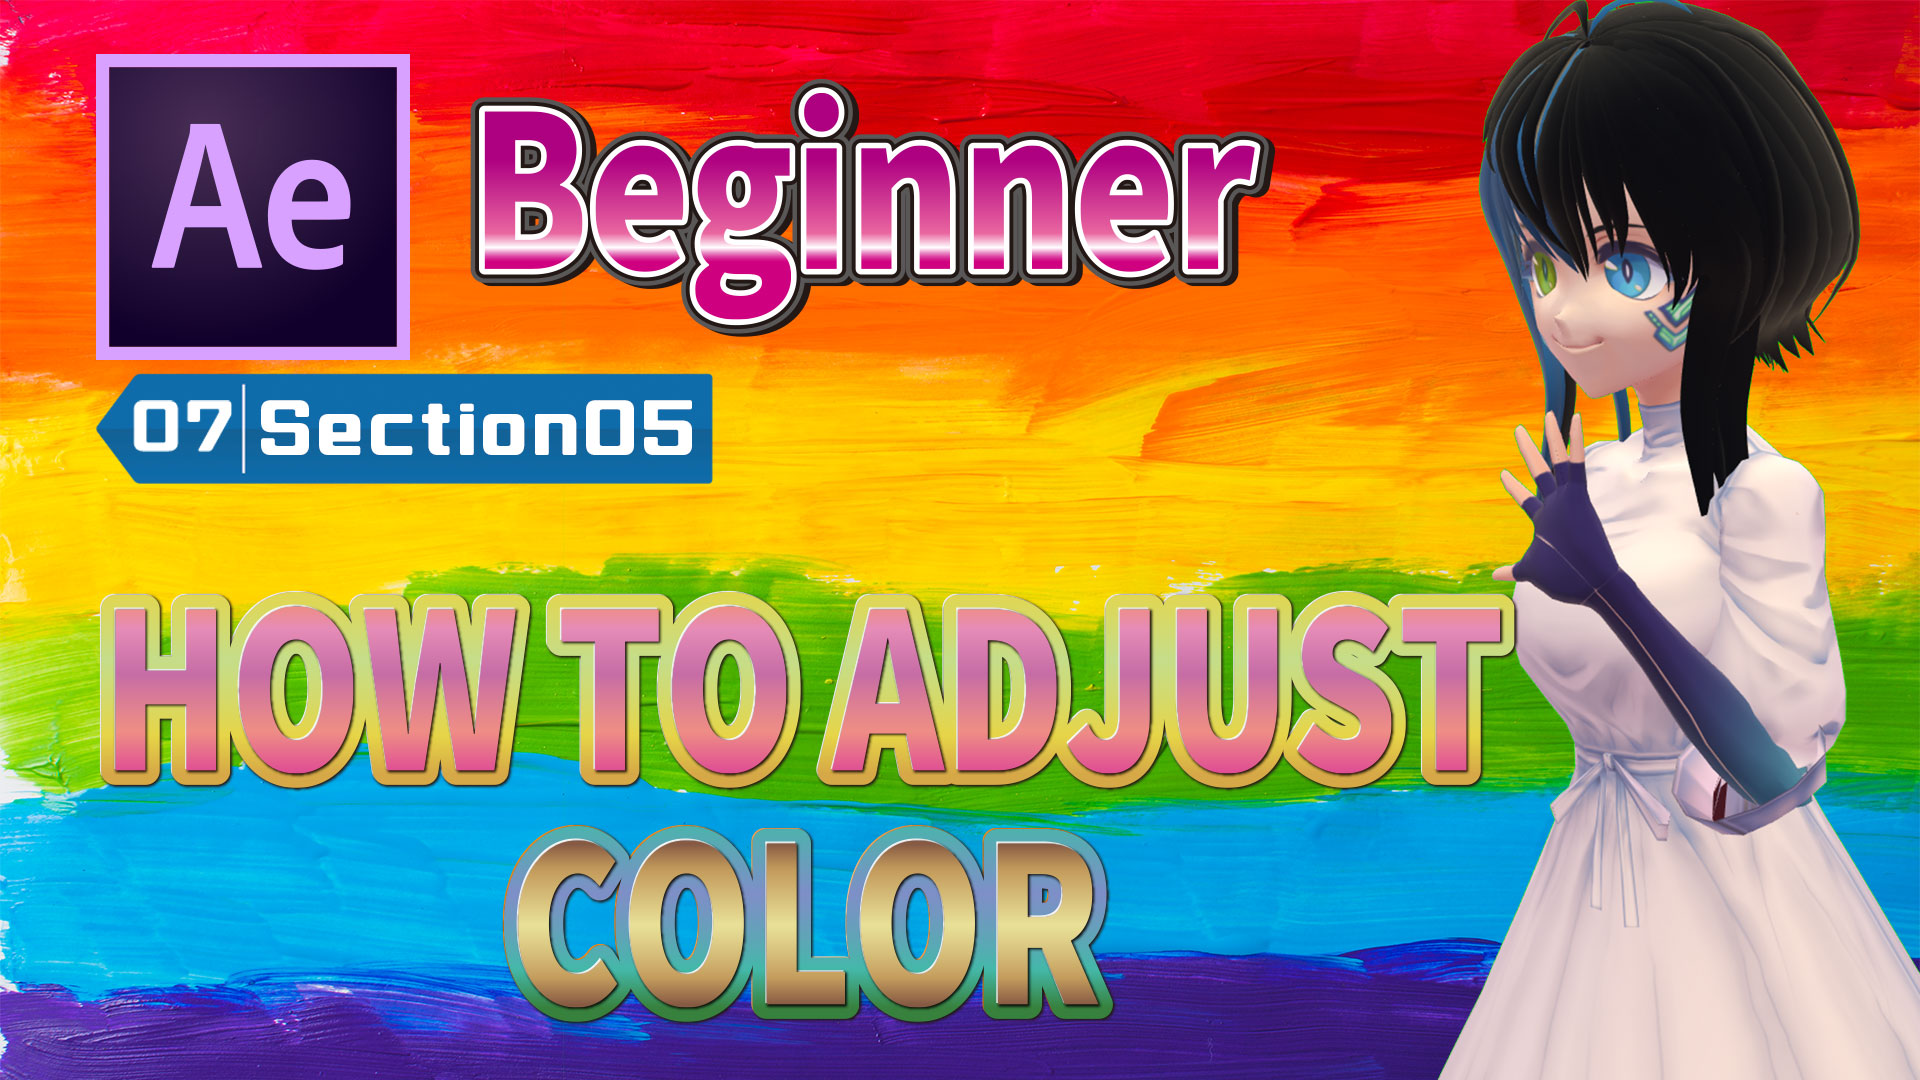 HOW TO ADJUST COLOR